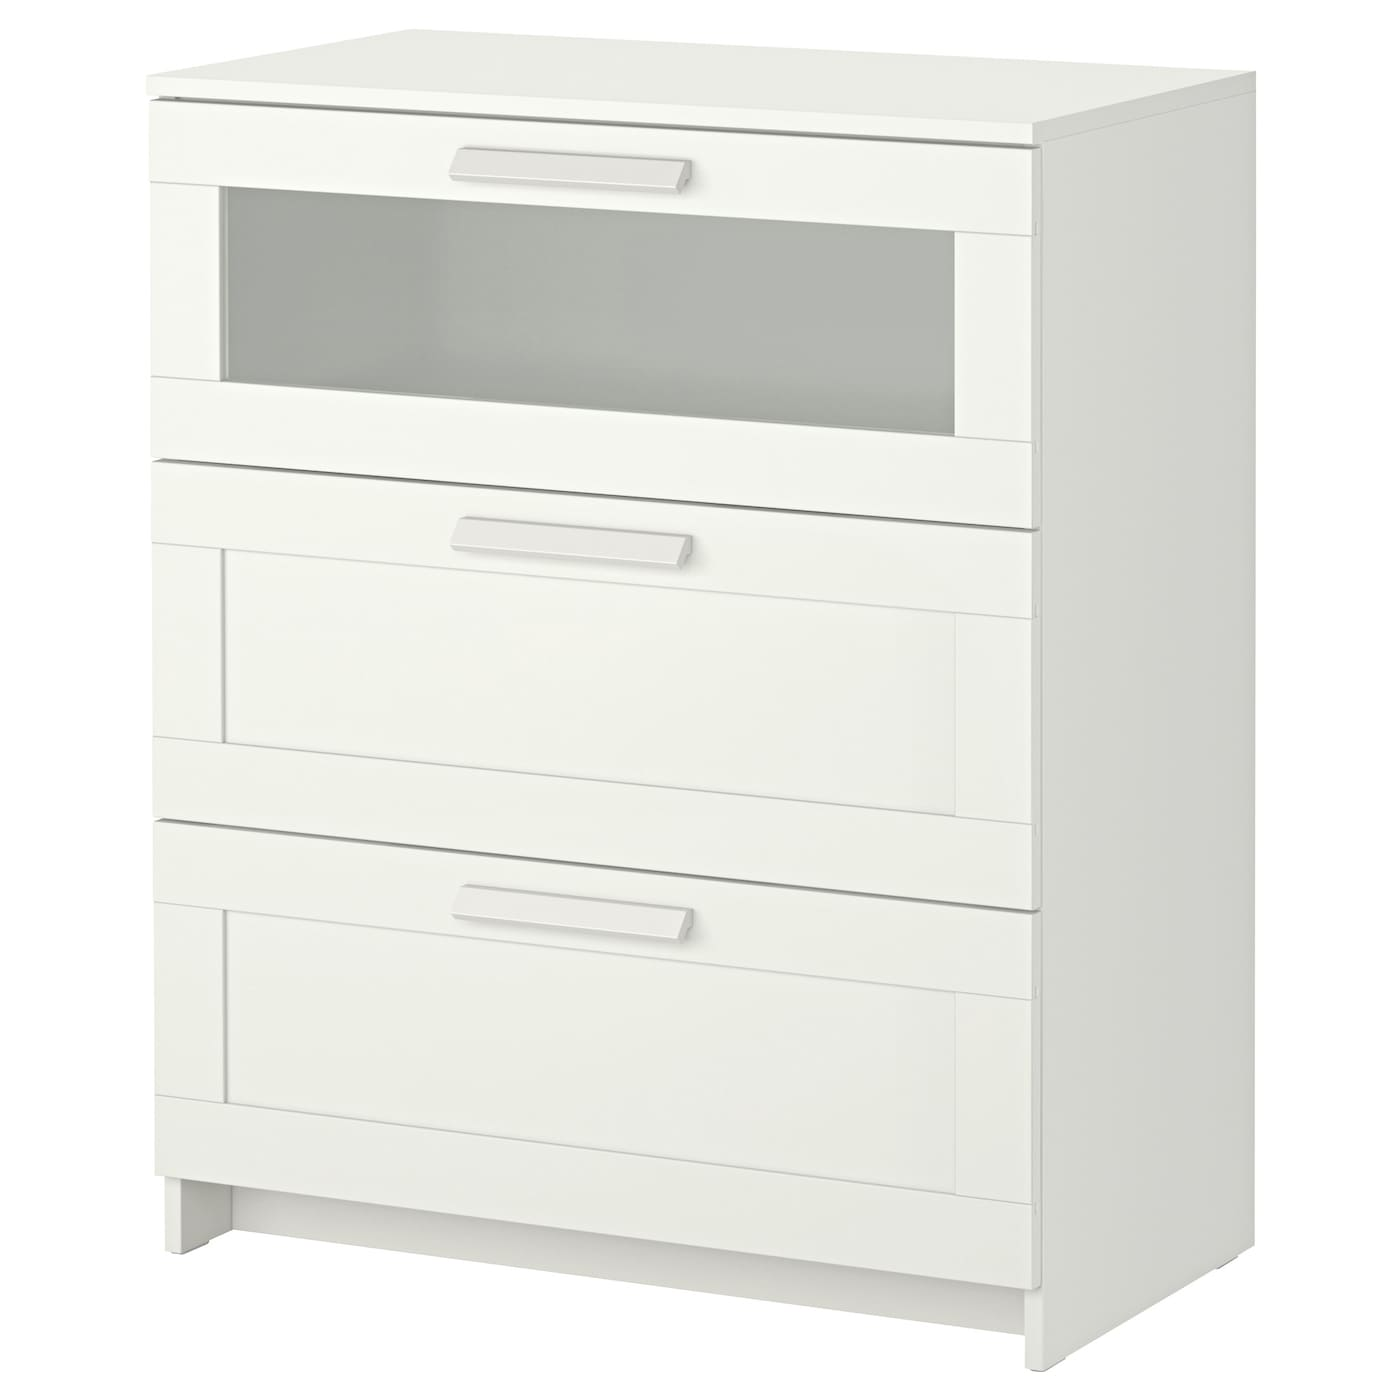 Ikea Brimnes Chest Of 3 Drawers Smooth Running With Pull Out Stop